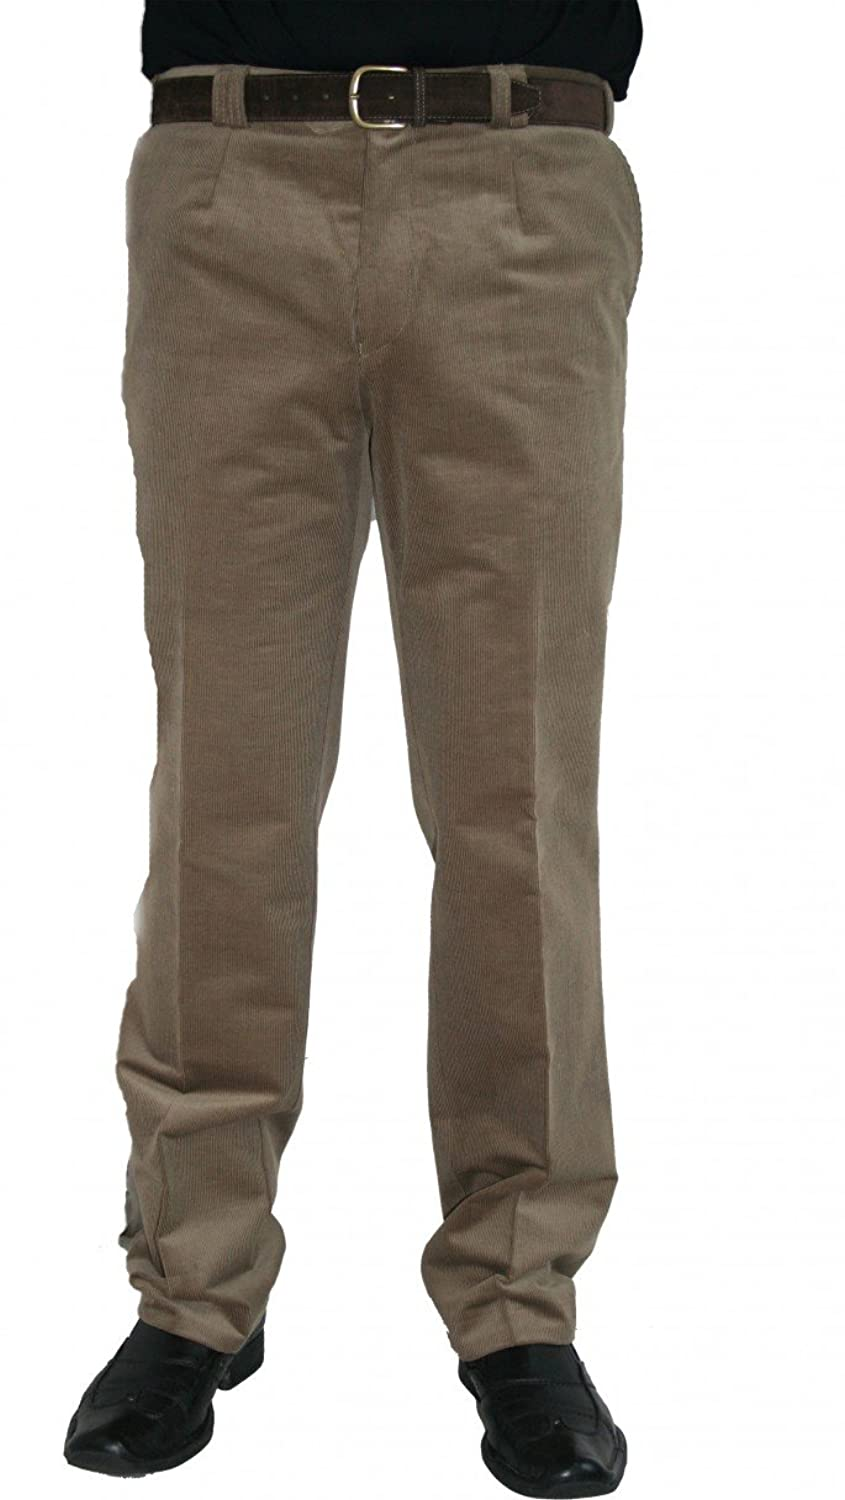 Needlecord Trouser Koblenz 30GR?SSEN - Grey - 29